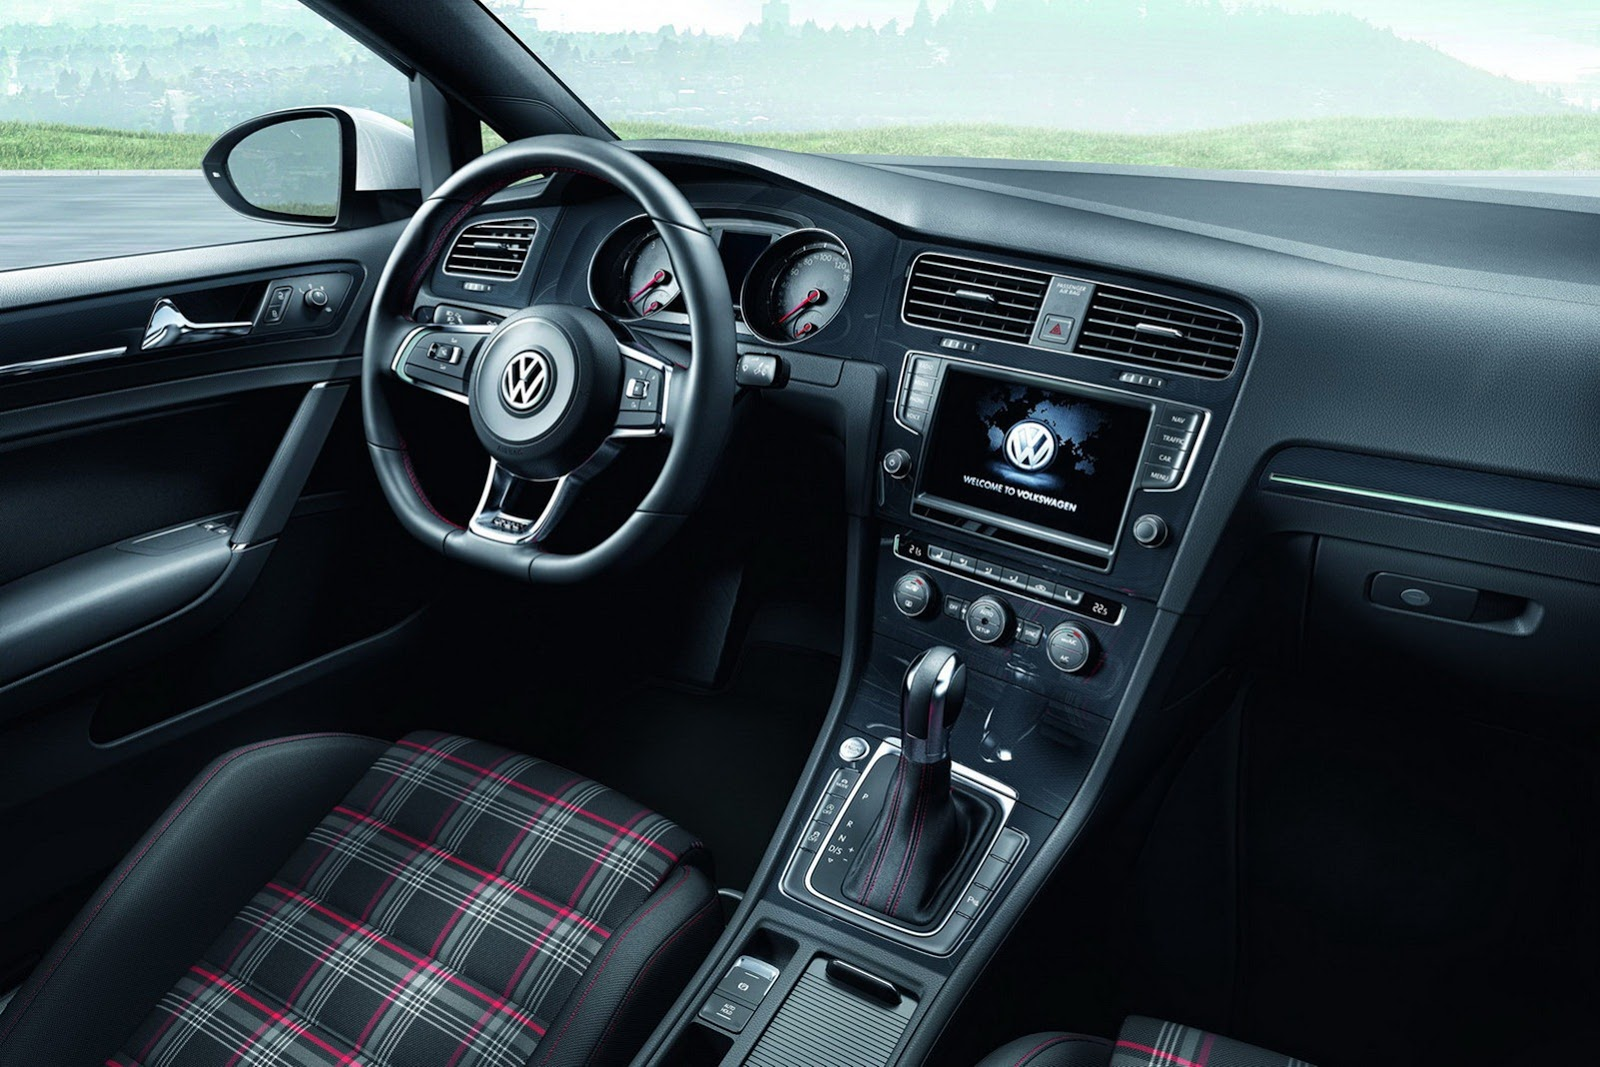 2013 Mk7 Vw Golf Gti Interior 1 Forcegt Com